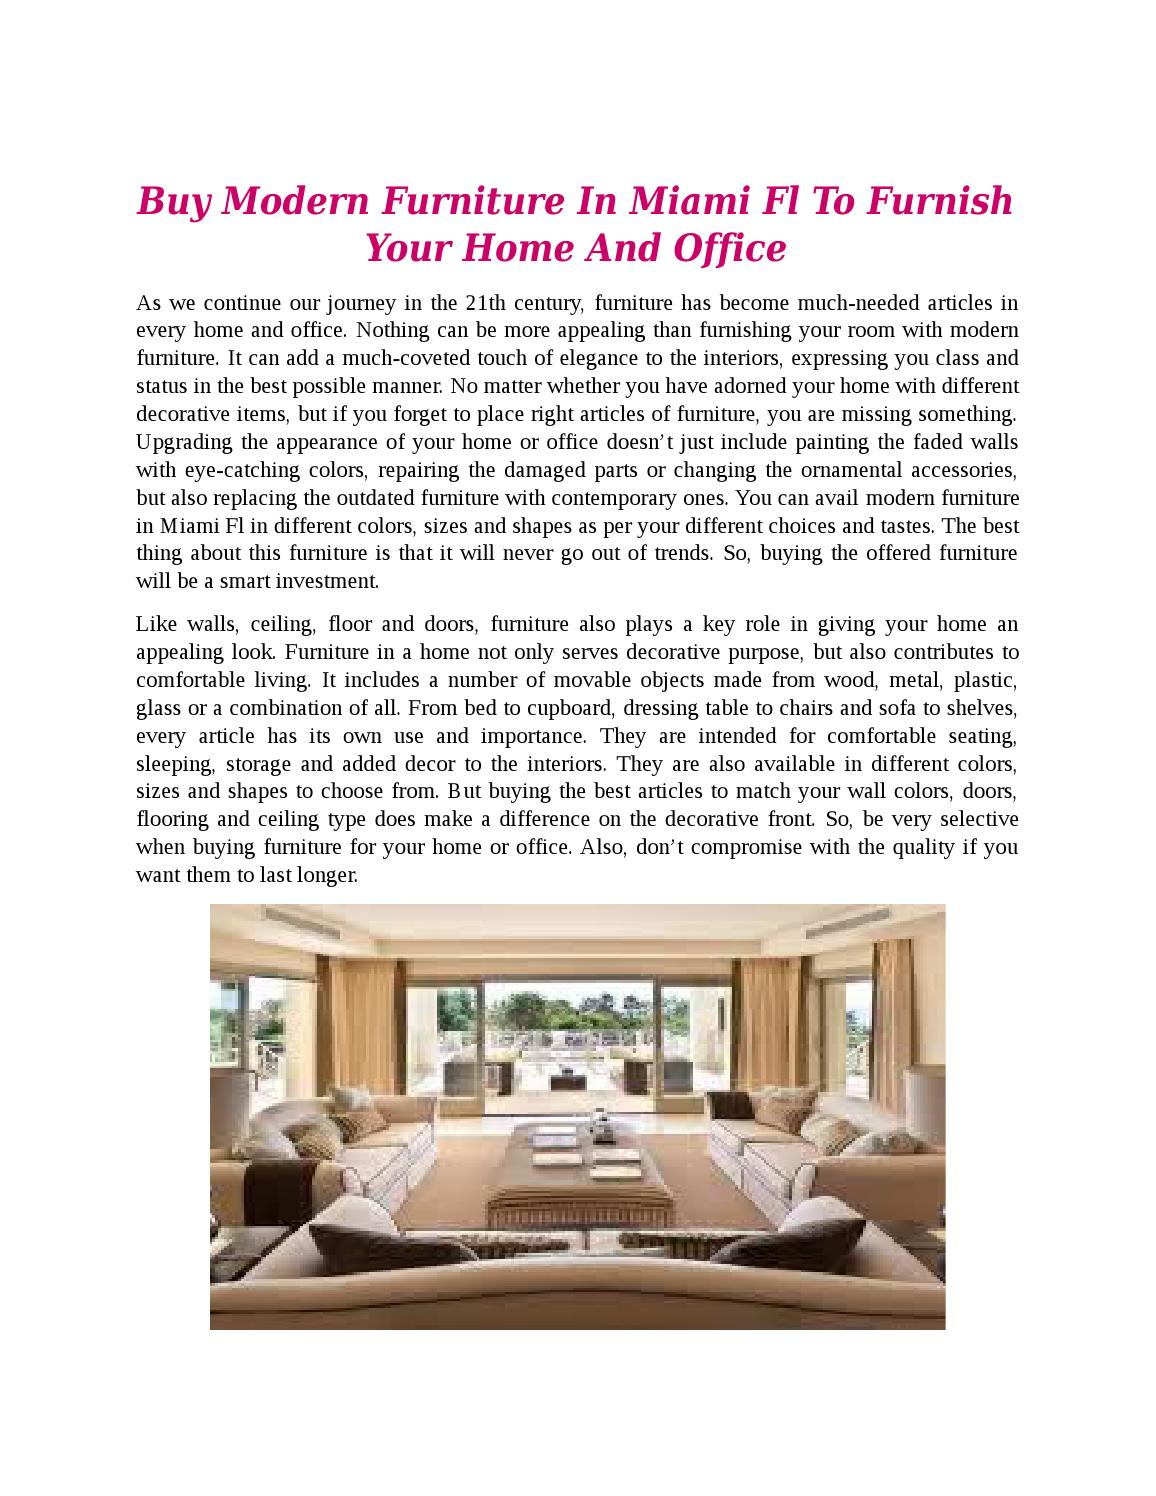 Buy modern furniture in miami fl to furnish your home and office by vivo moderna issuu